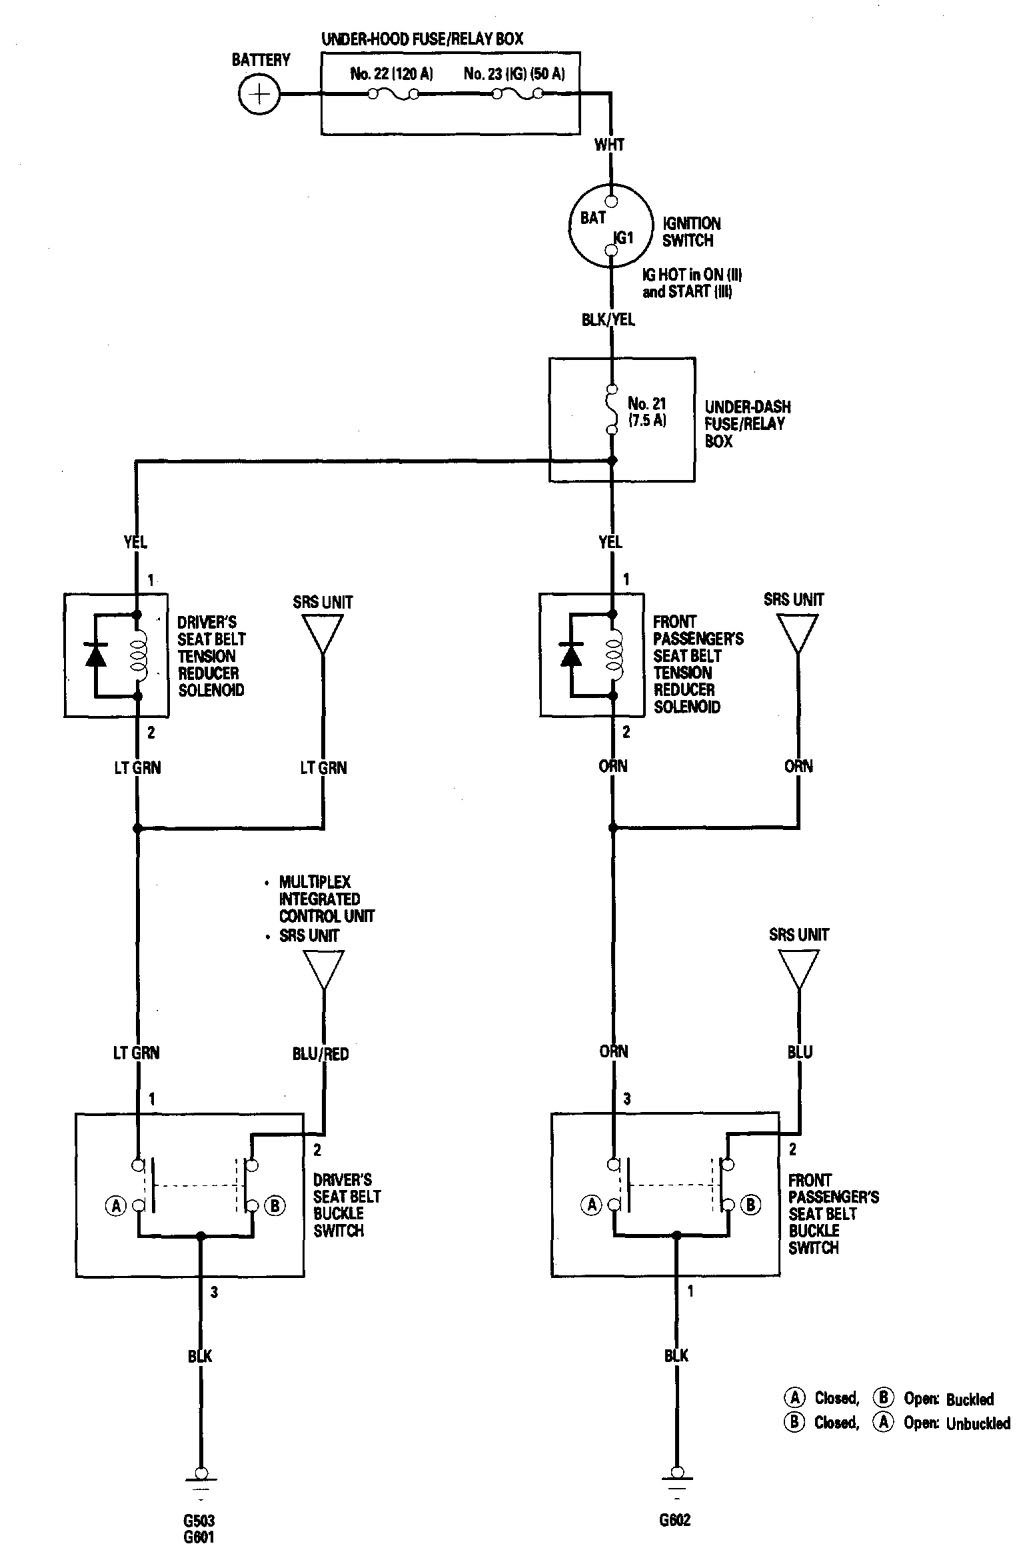 Awesome Jvc Kd R210 Wiring Diagram Wiring Cloud Venetbieswglorg